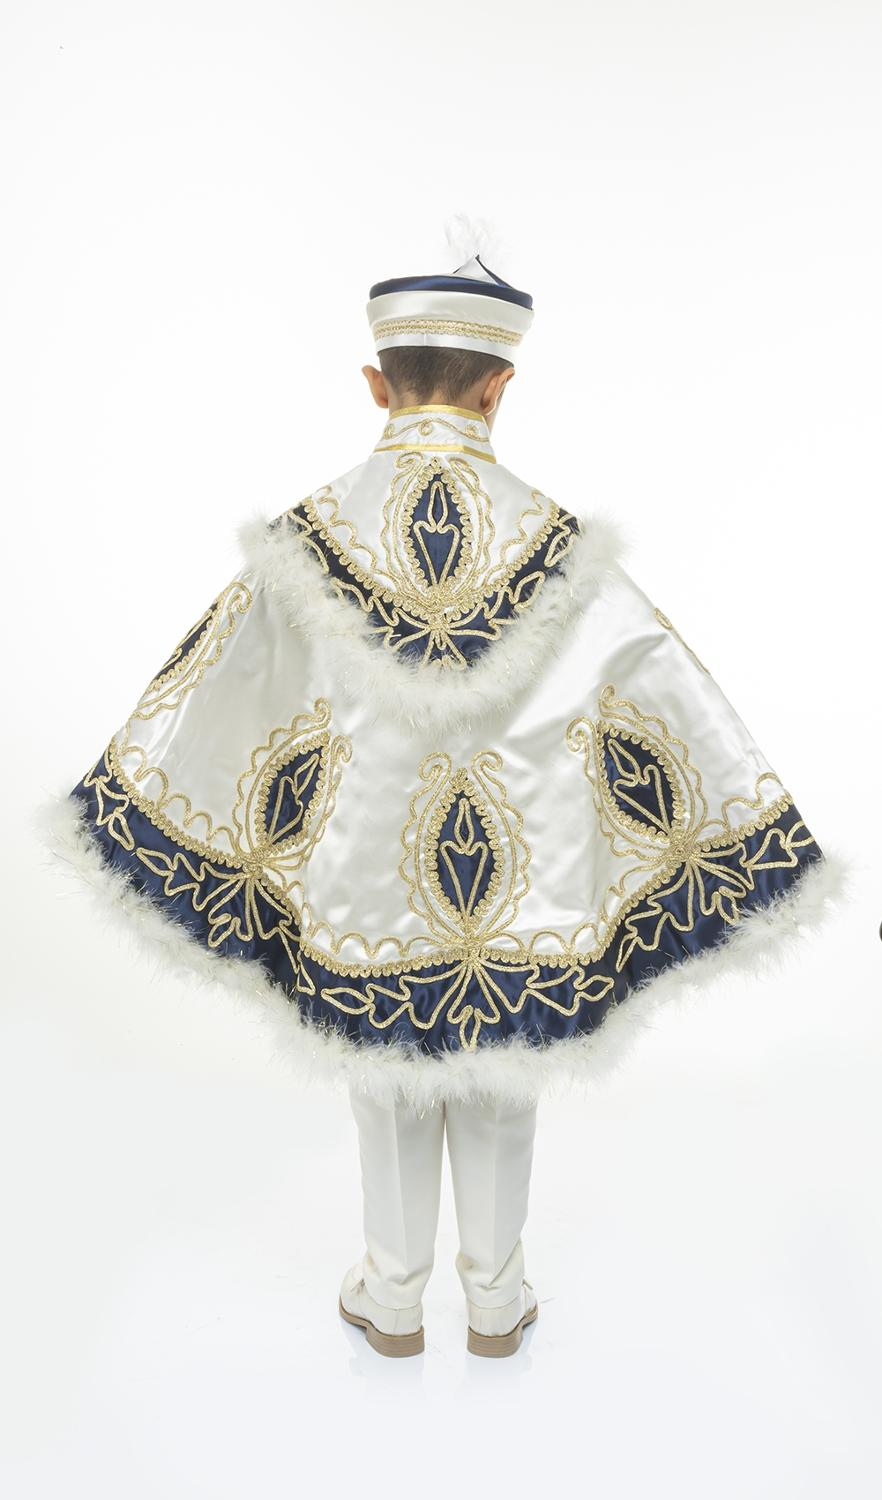 Sultan Cape Prince Sunnet Suit Kid Dress 1-14 Age Birthday Party Event Costume Child Muslim Islamic Turkish Tradition Special enlarge